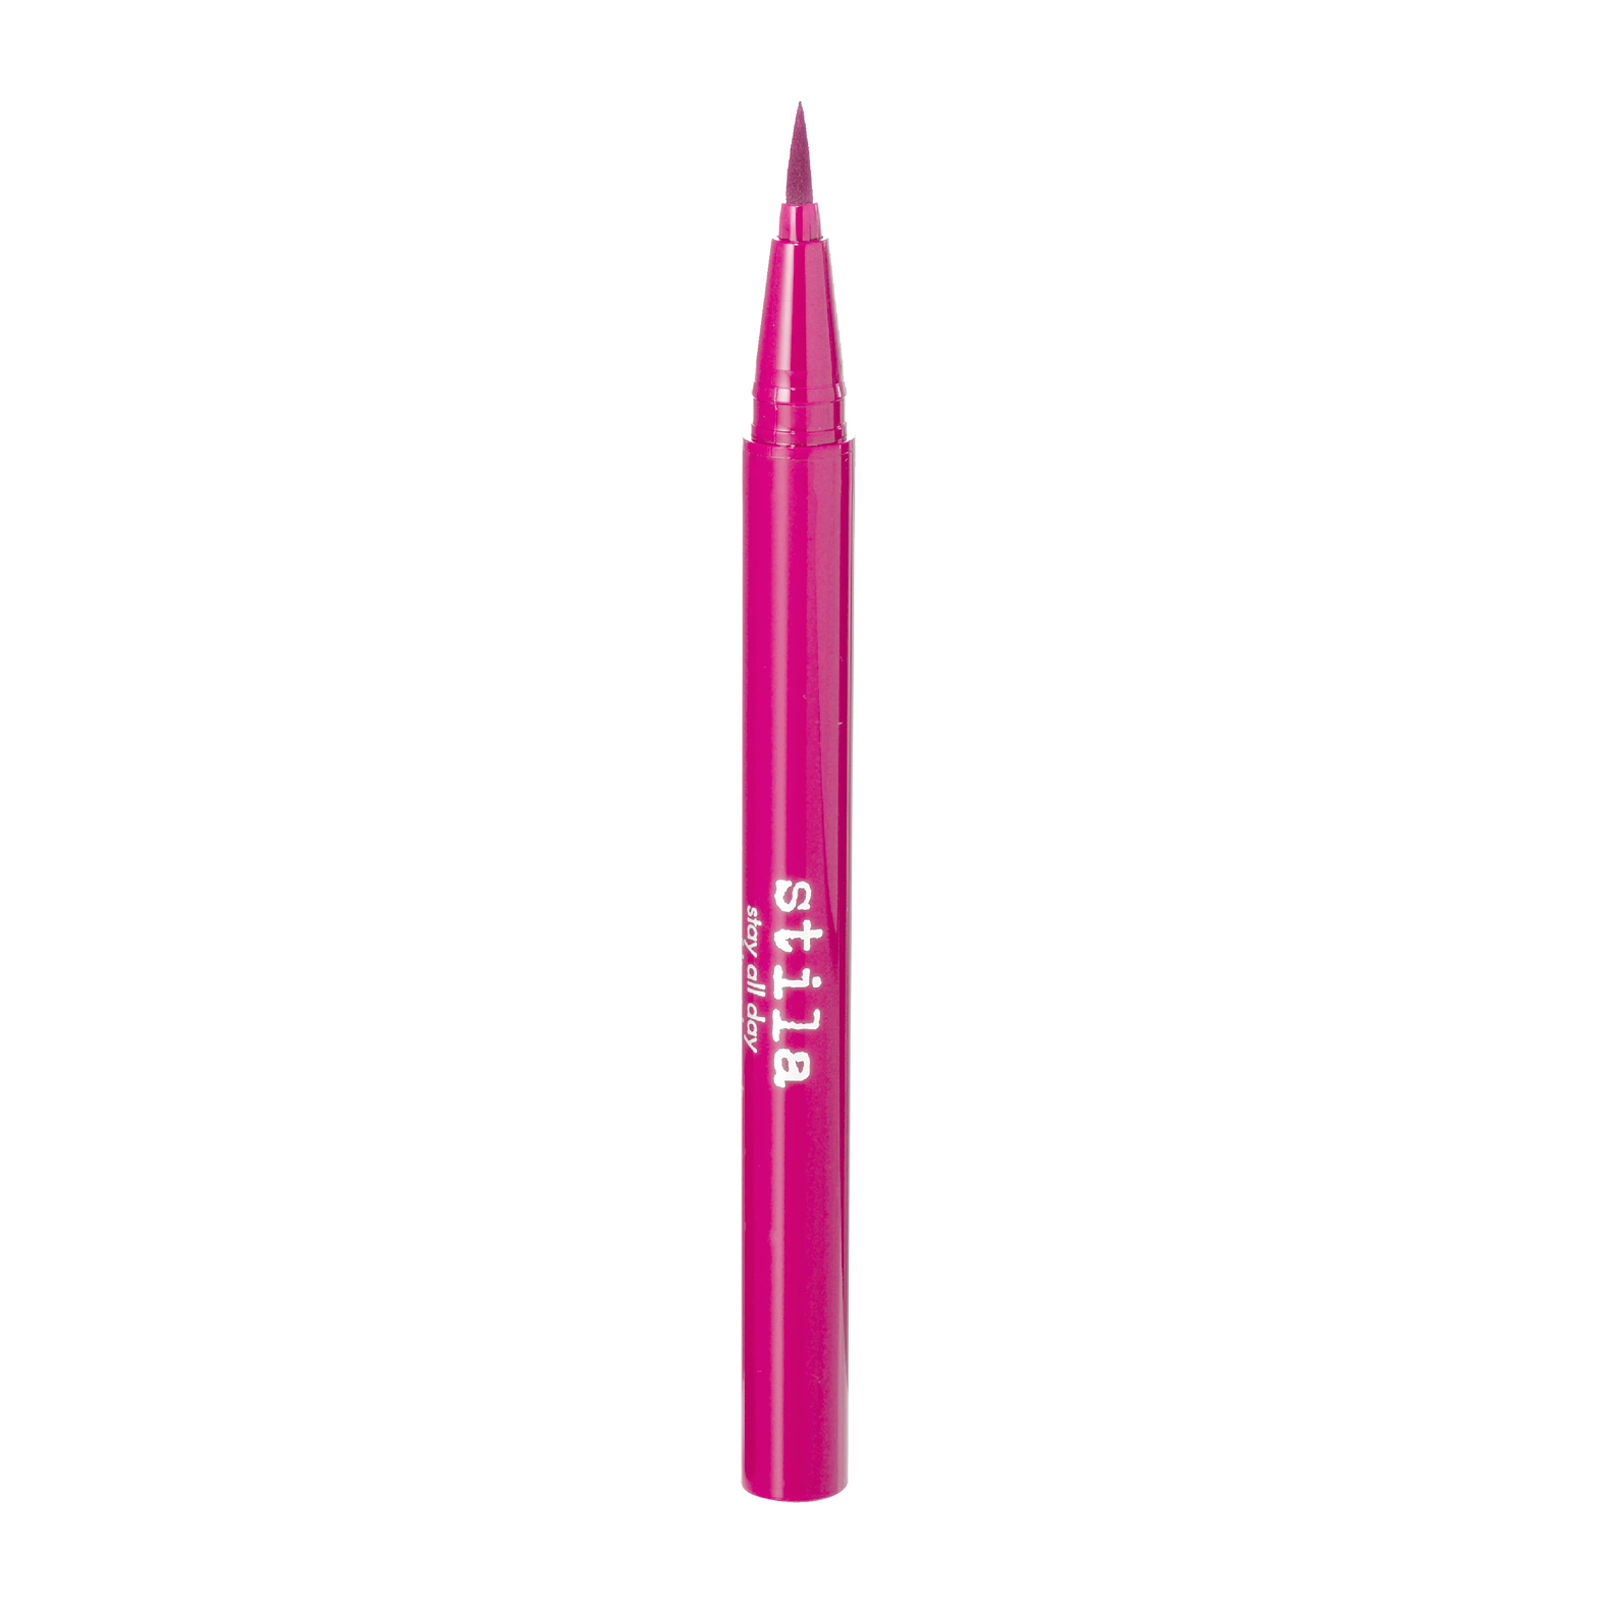 Stila Stay All Day Waterproof Liquid Eye Liner 0.4g Paradise Pink